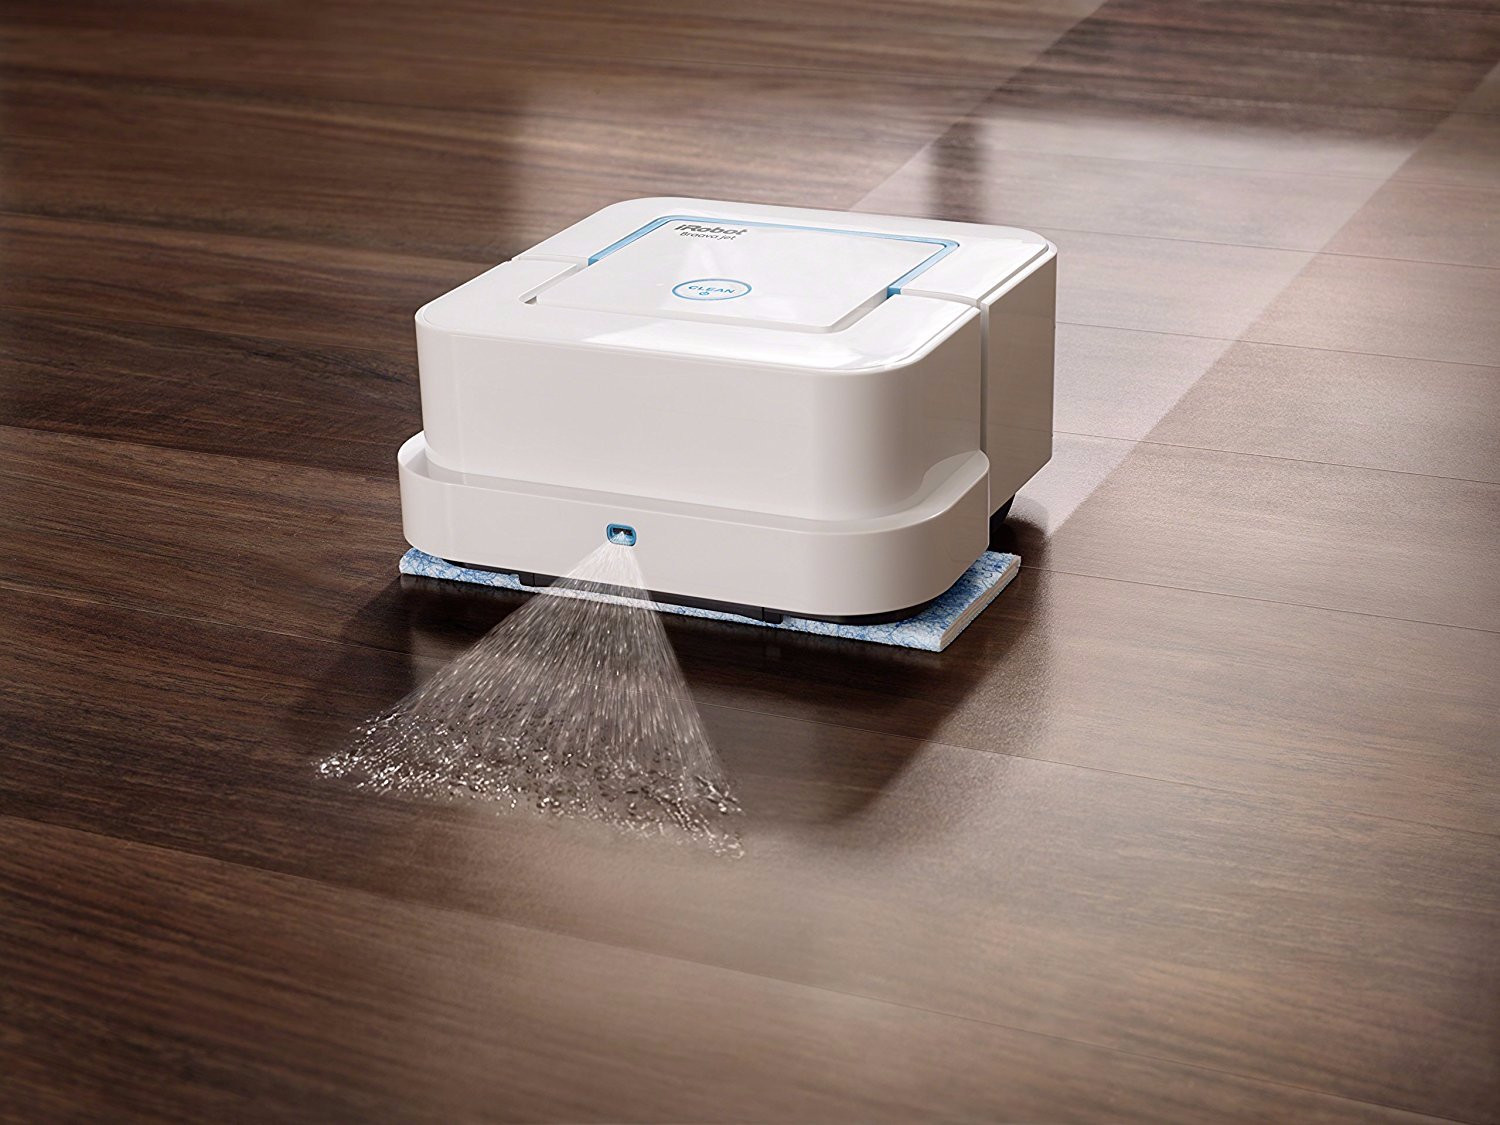 best hardwood floor mop vacuum of 12 smart home gadgets that practically clean the house for you regarding pictured irobot braava jet 240 robot mop 169 available at amazonirobot